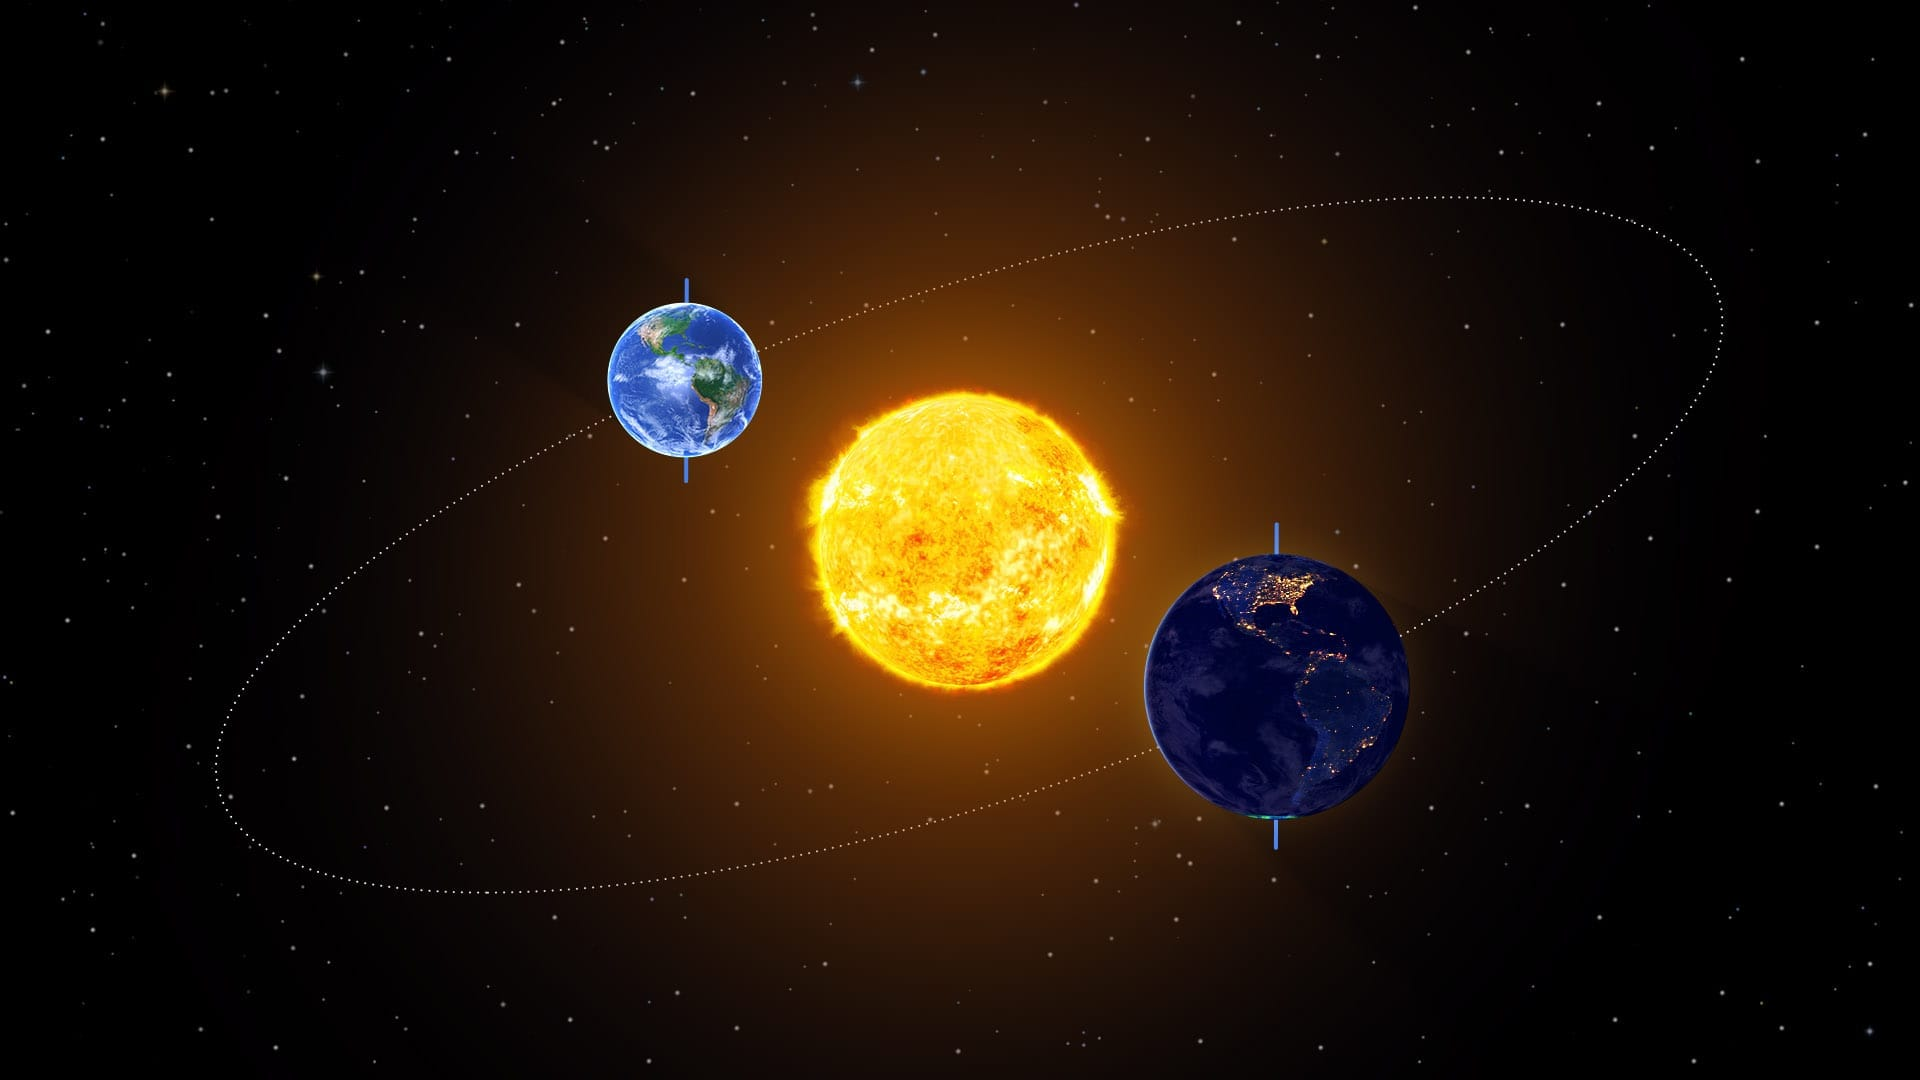 March equinox and September equinox